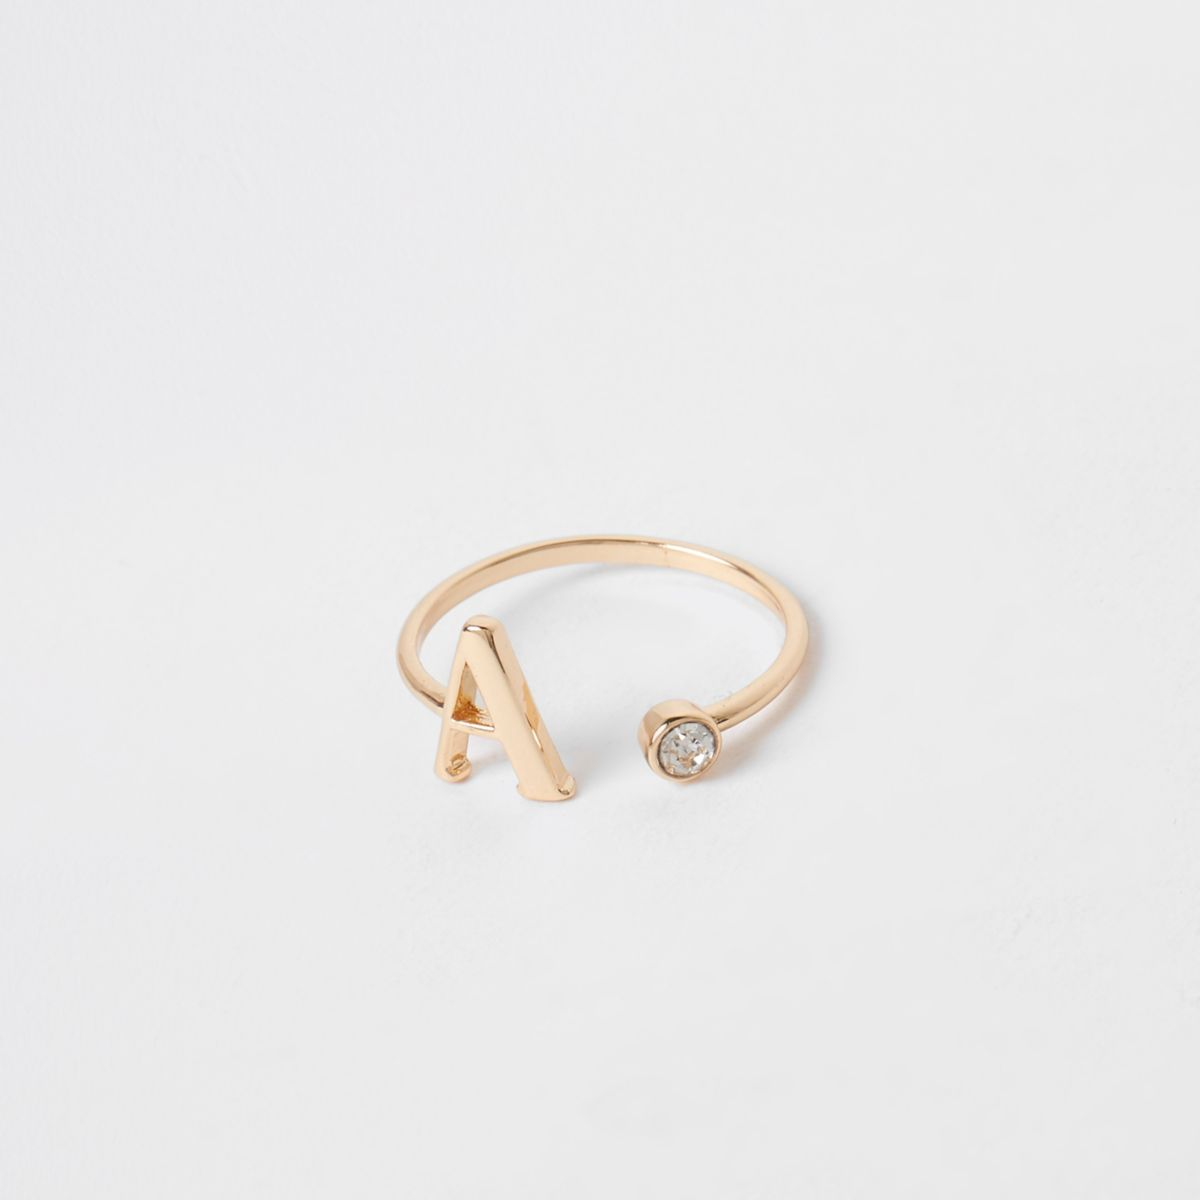 Gold plated 'A' initial ring